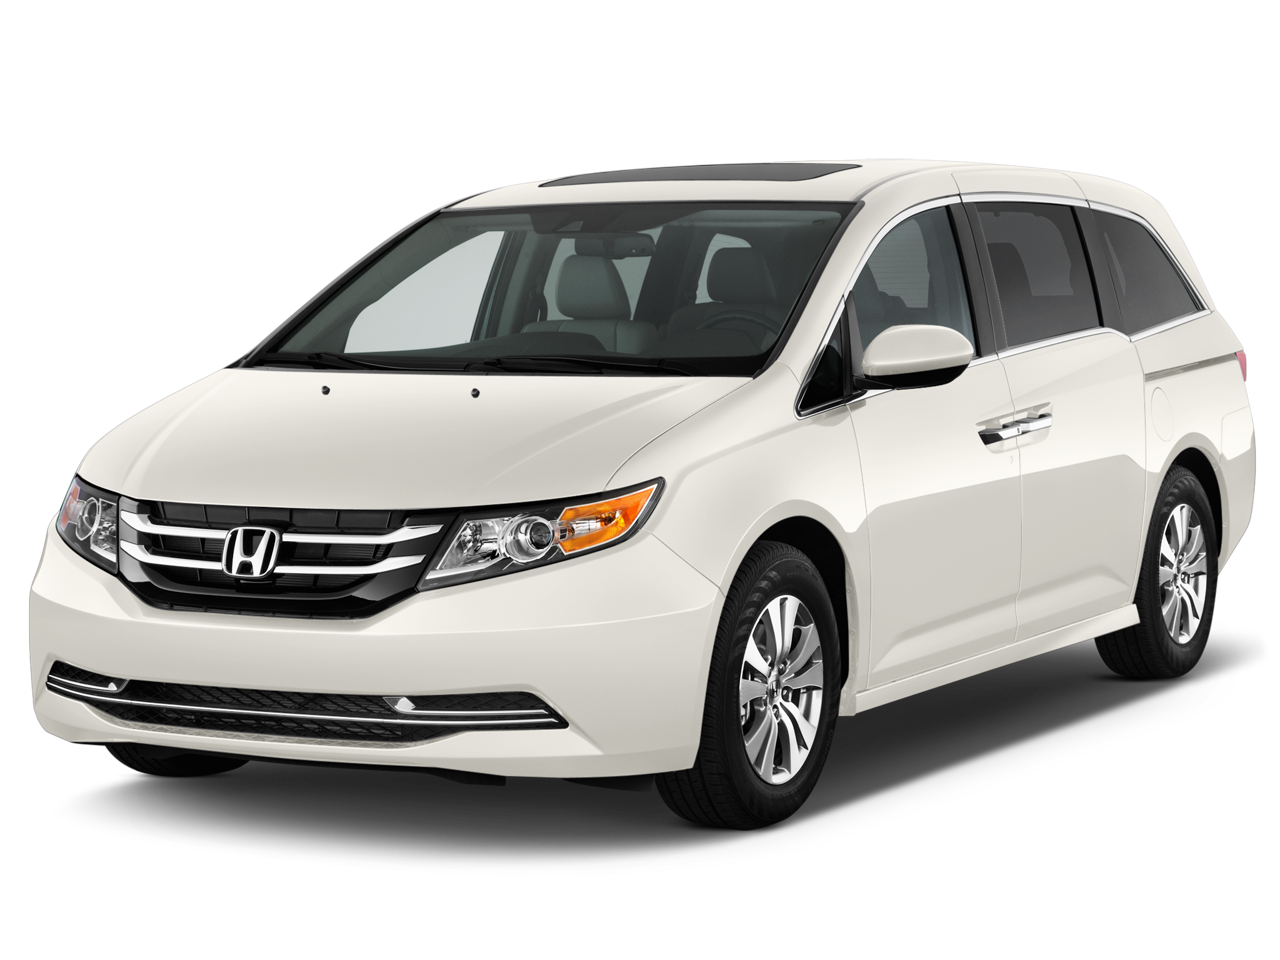 New odyssey between 0 miles and 1 000 miles for sale for Honda odyssey for sale nj